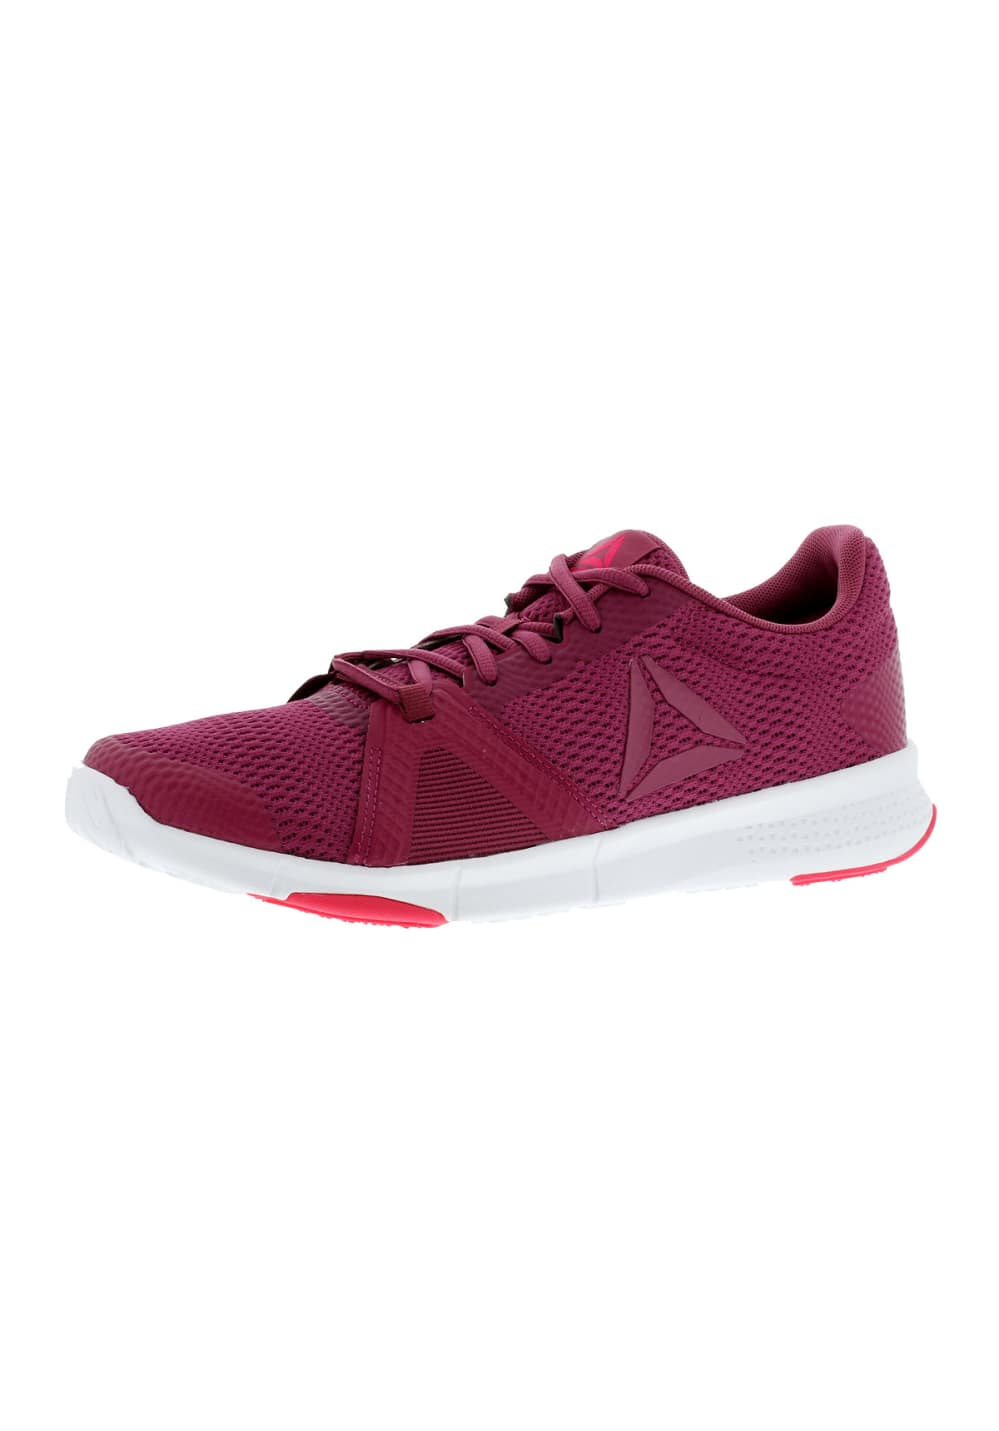 cheap for discount f70e3 7621b Next. -60%. Reebok. Reebok Flexile - Chaussures fitness pour Femme